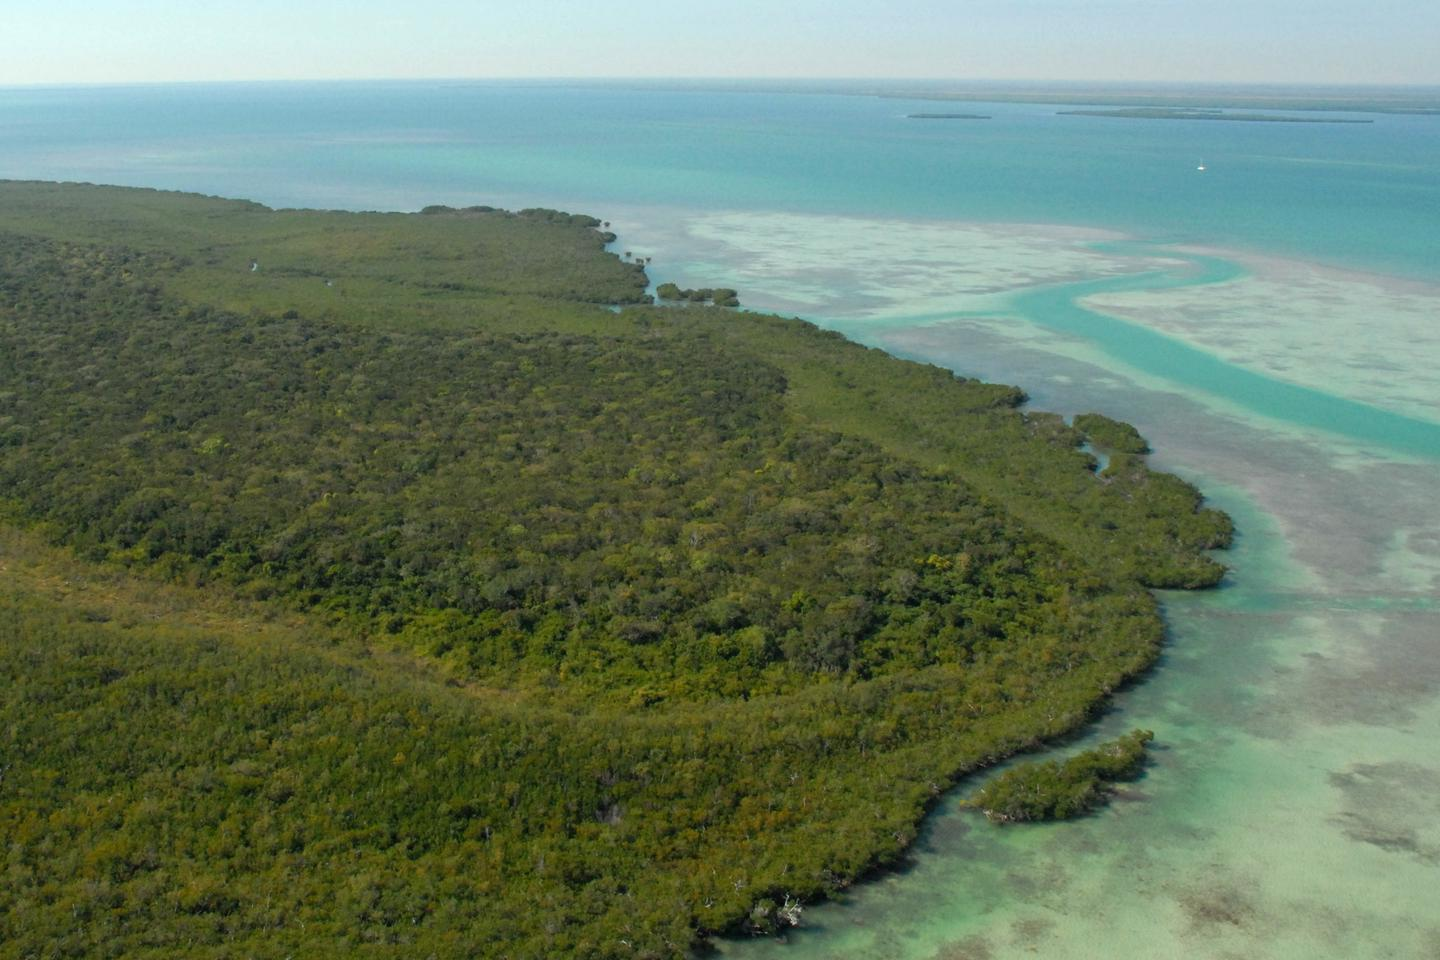 Totten KeyBiscayne National Park includes the northernmost Florida Keys.